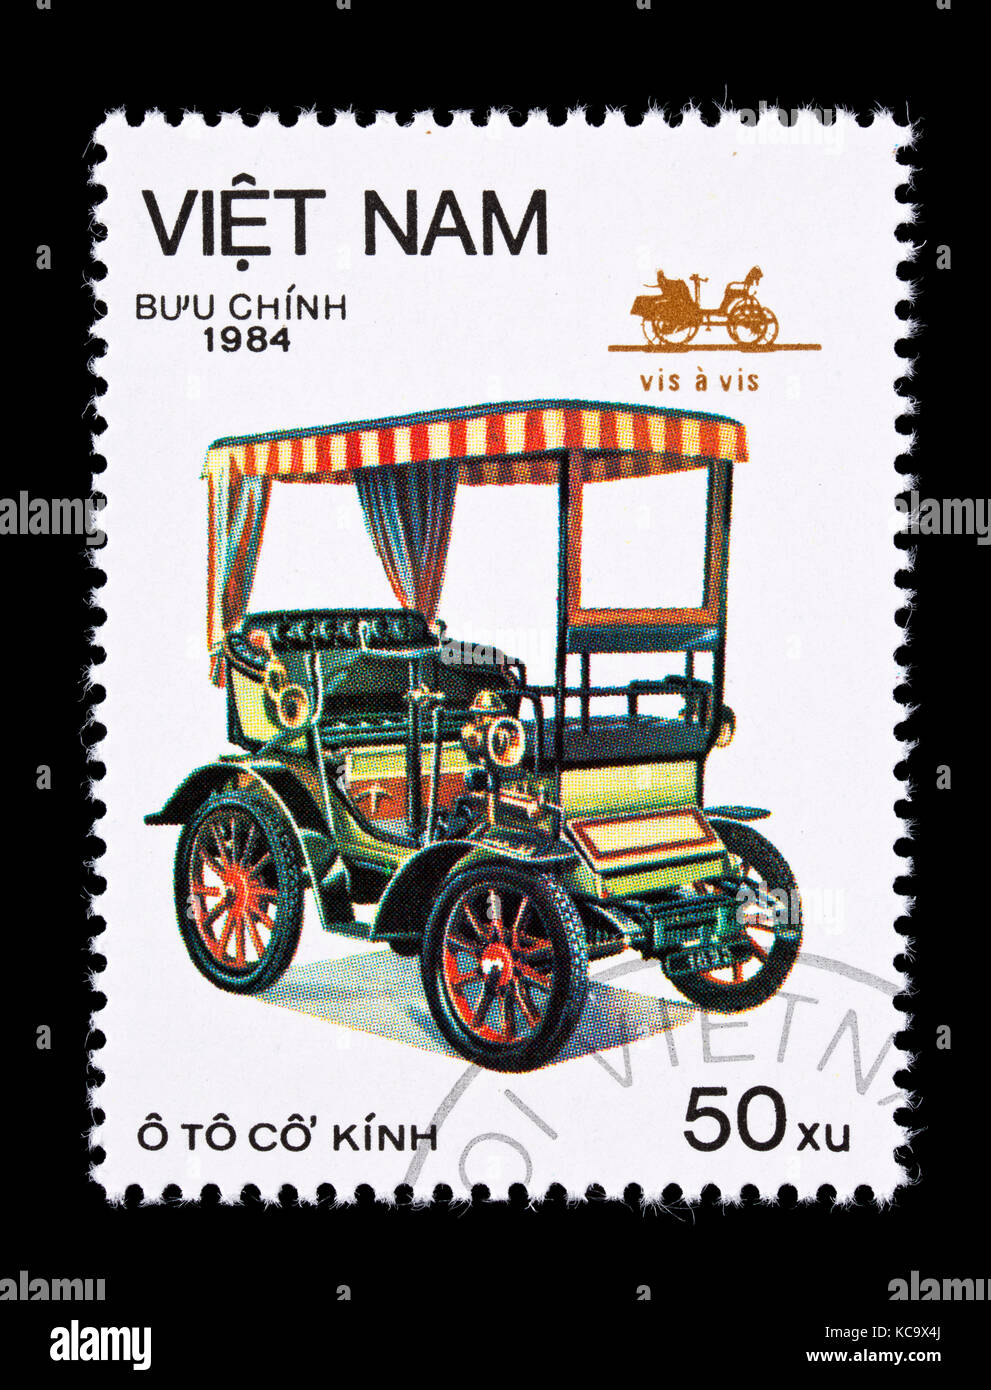 Postage stamp from Vietnam depicting a vis a vis, classic automobile. - Stock Image